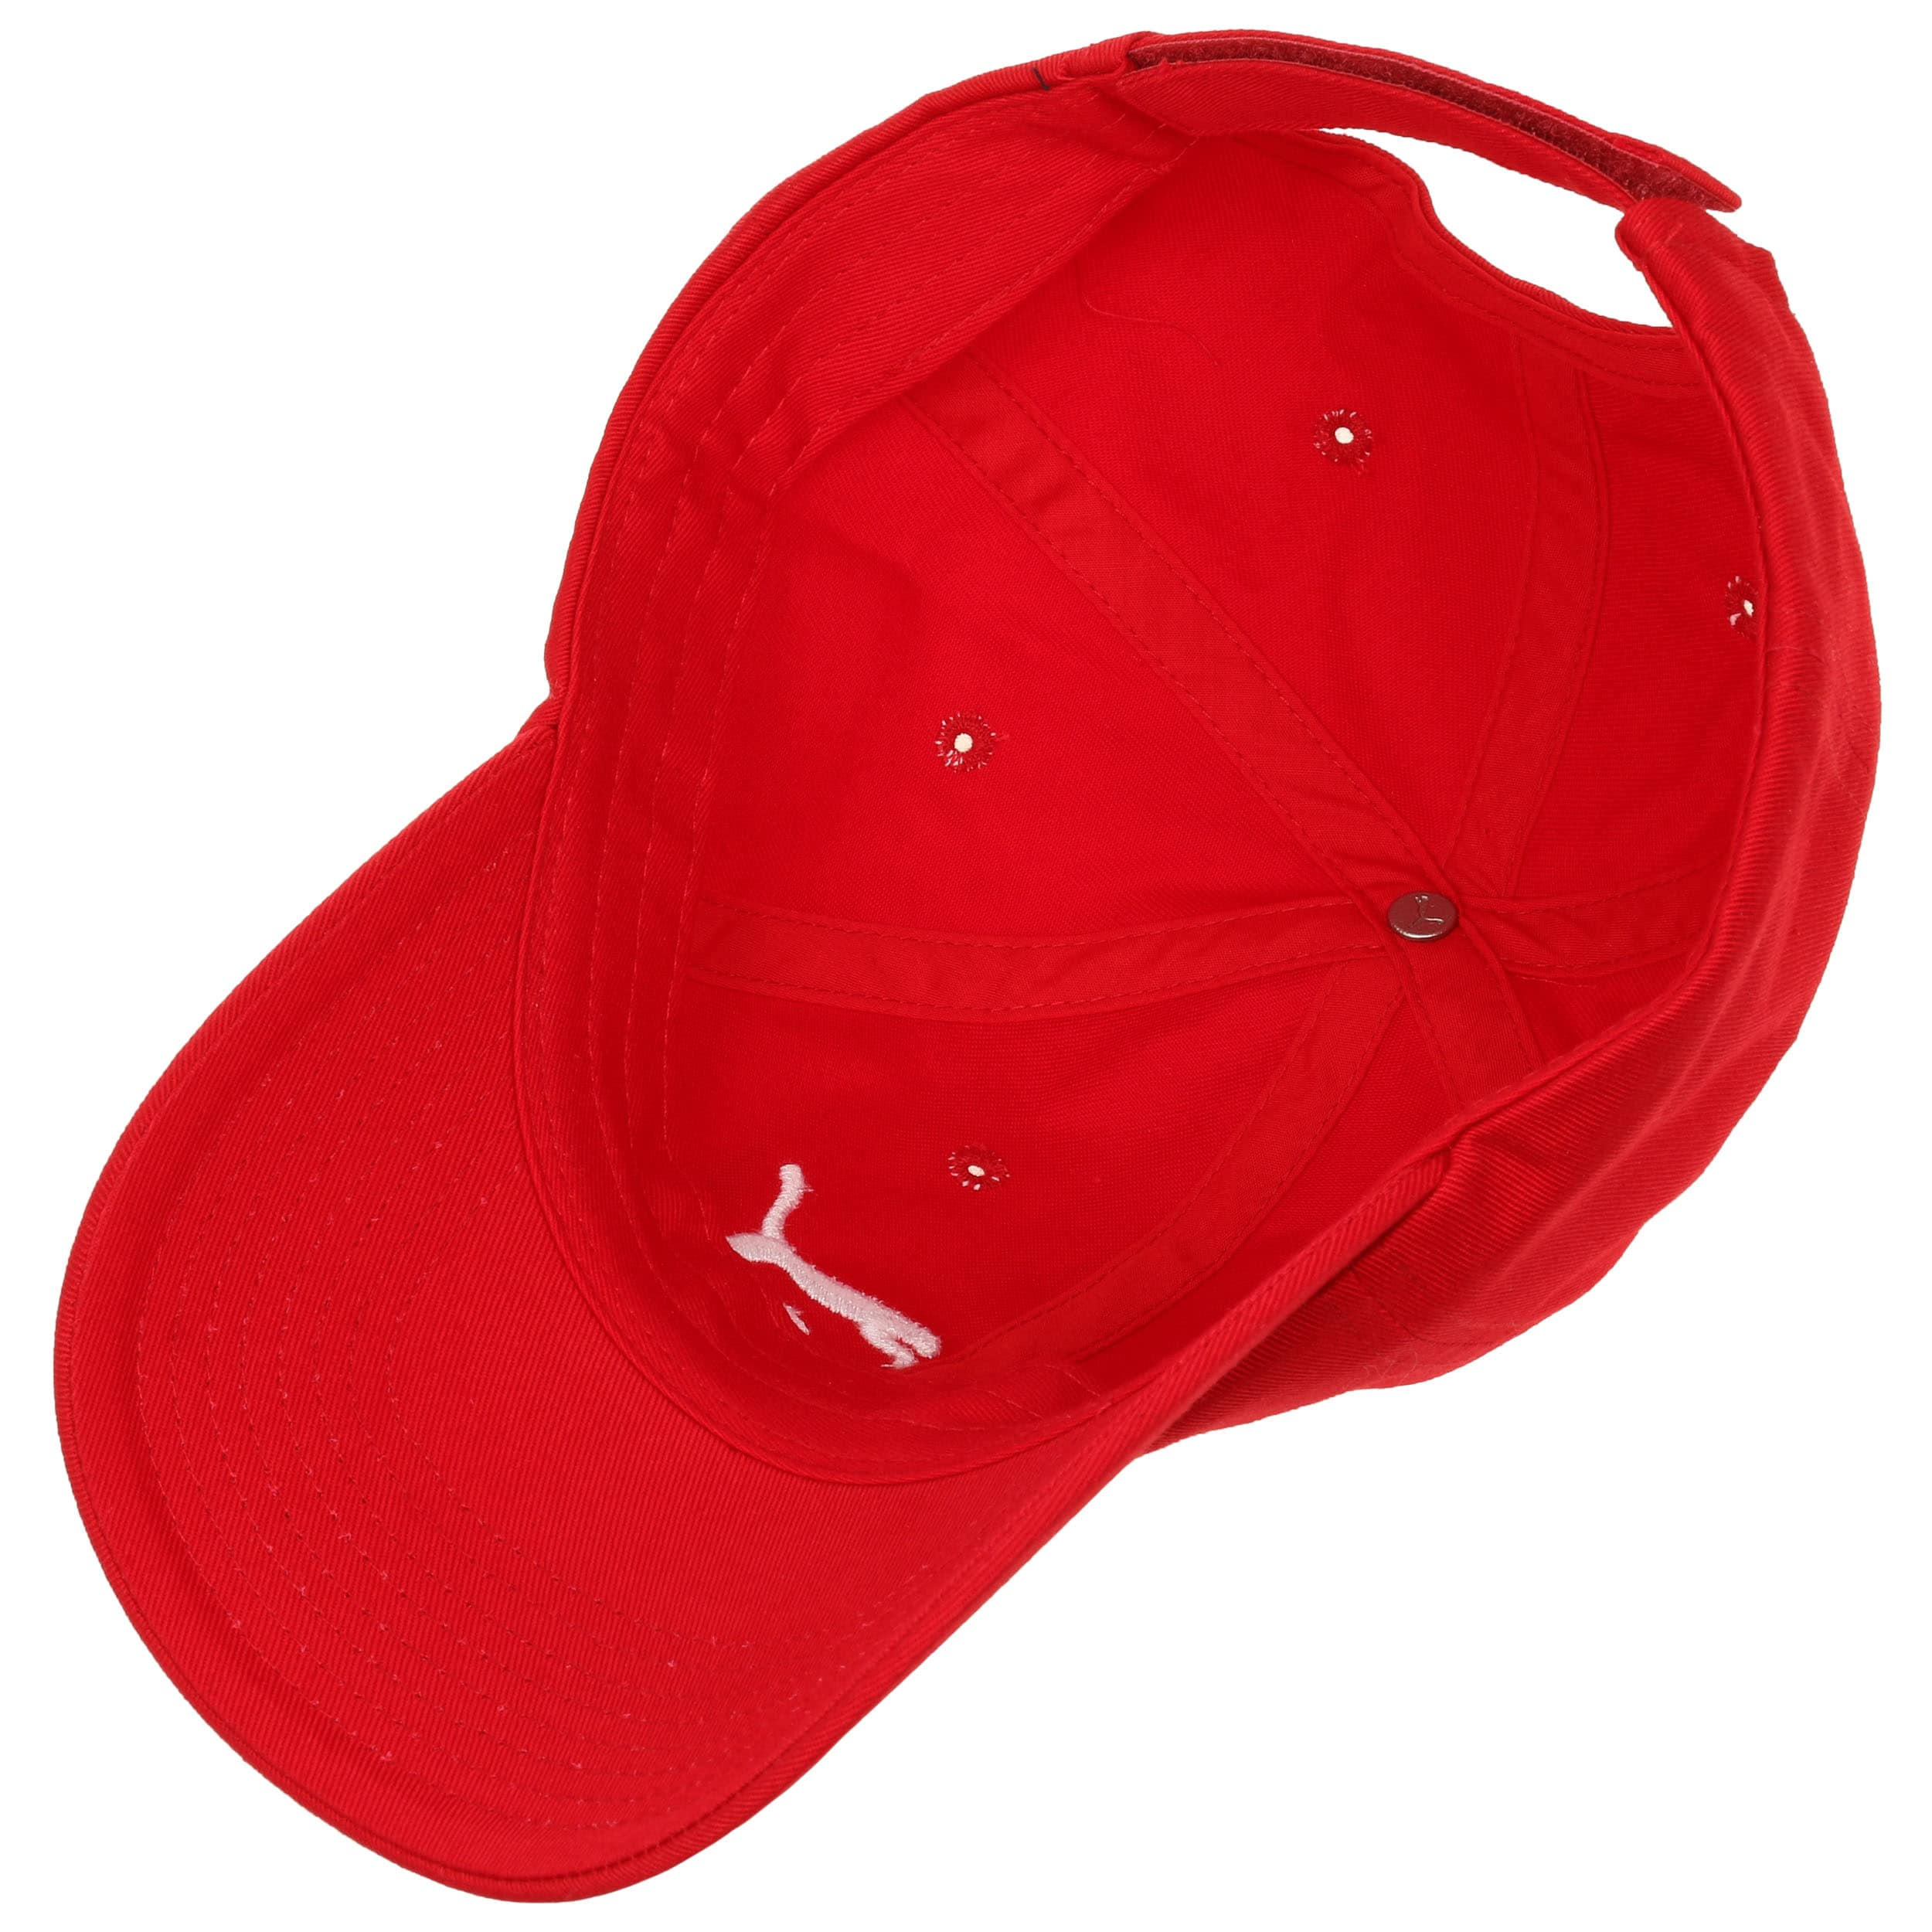 1 Baseball Cap by PUMA - red 2 ... 7ec7e9a9455b